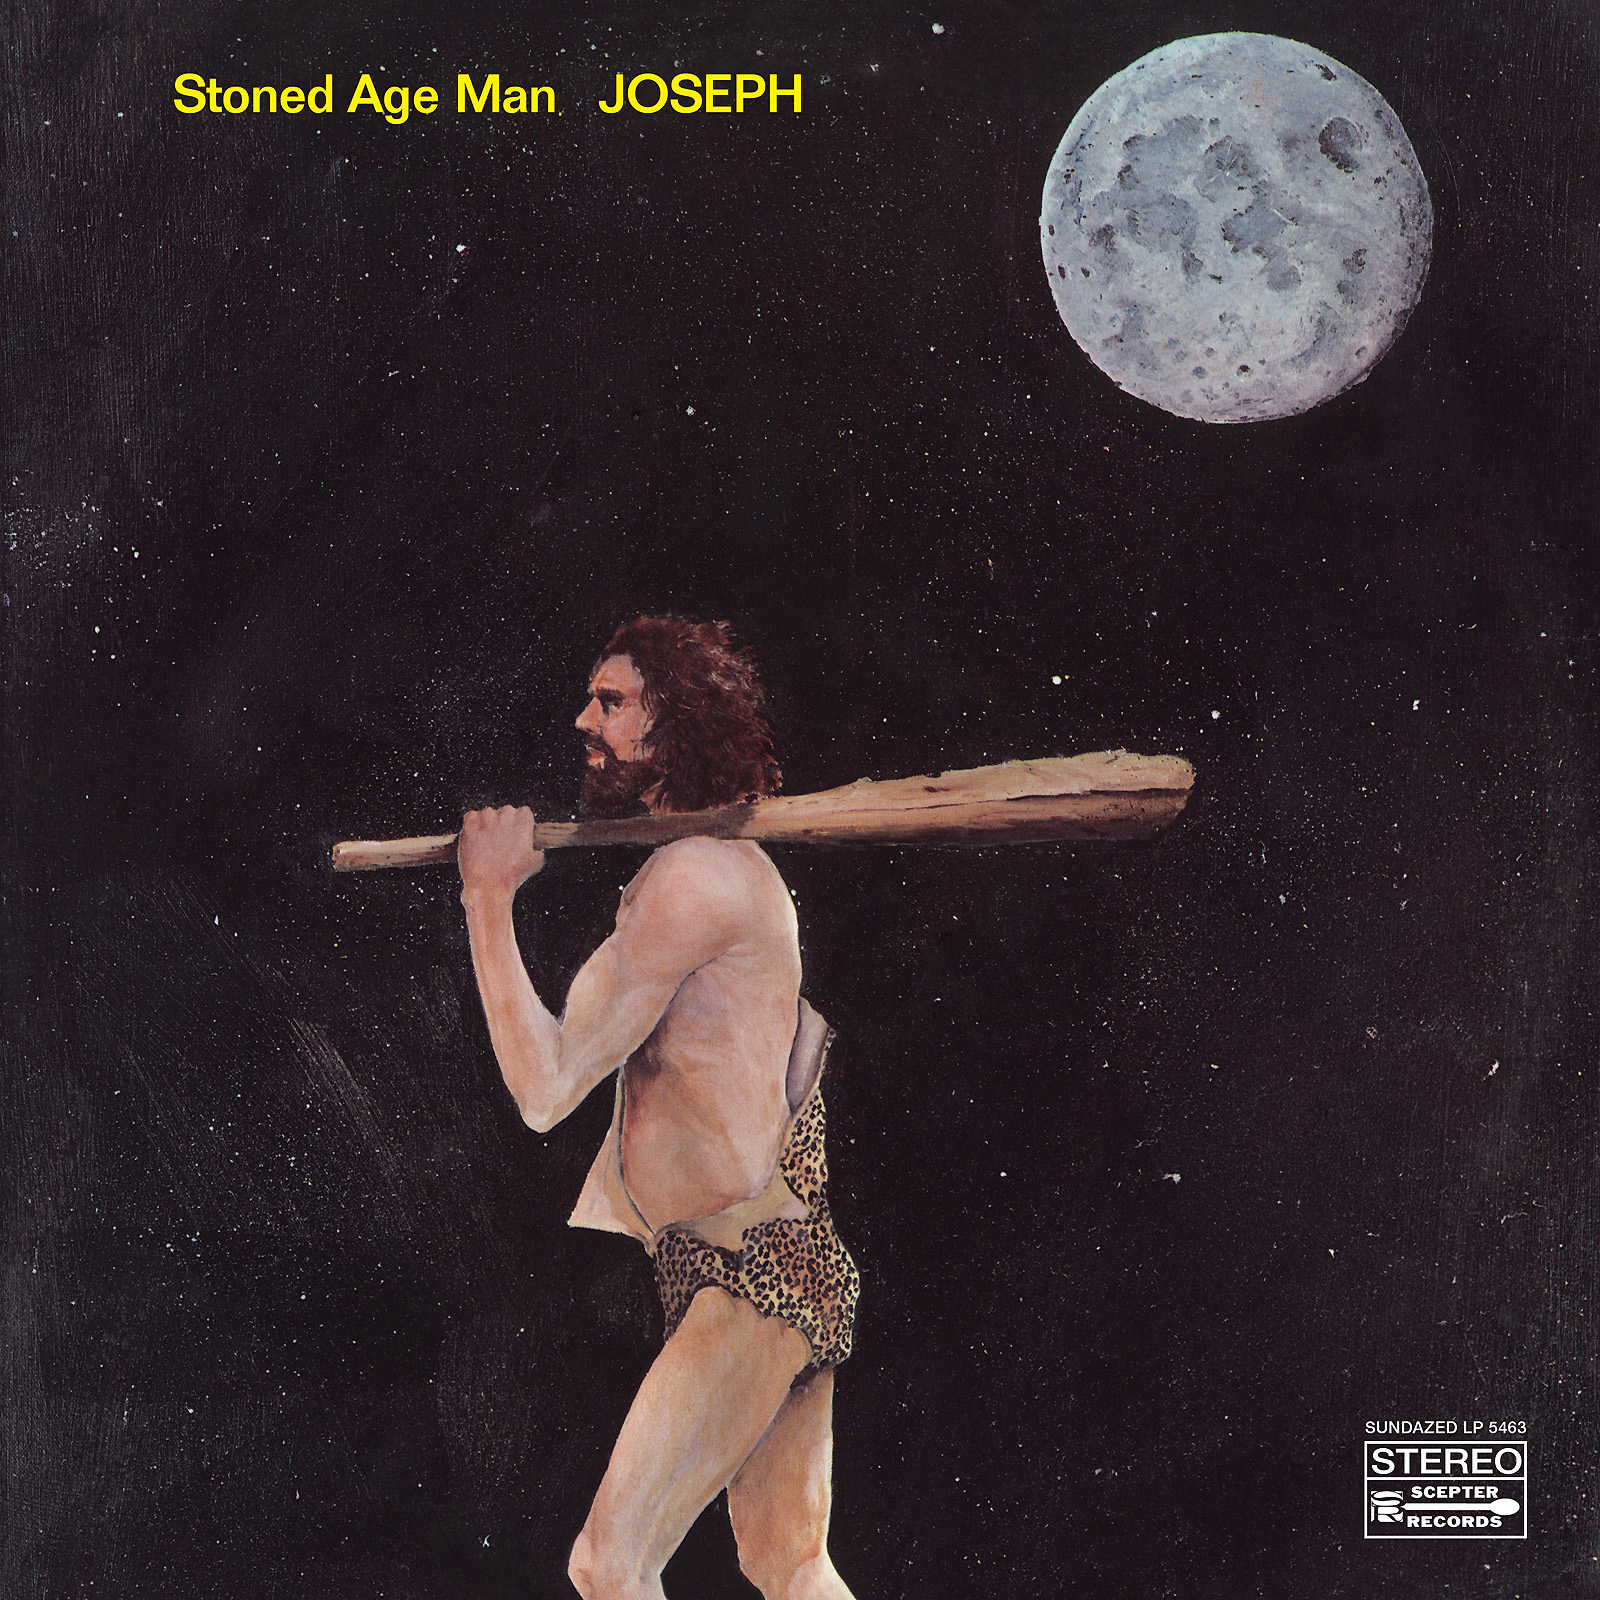 Joseph - Stoned Age Man lp (Sundazed)